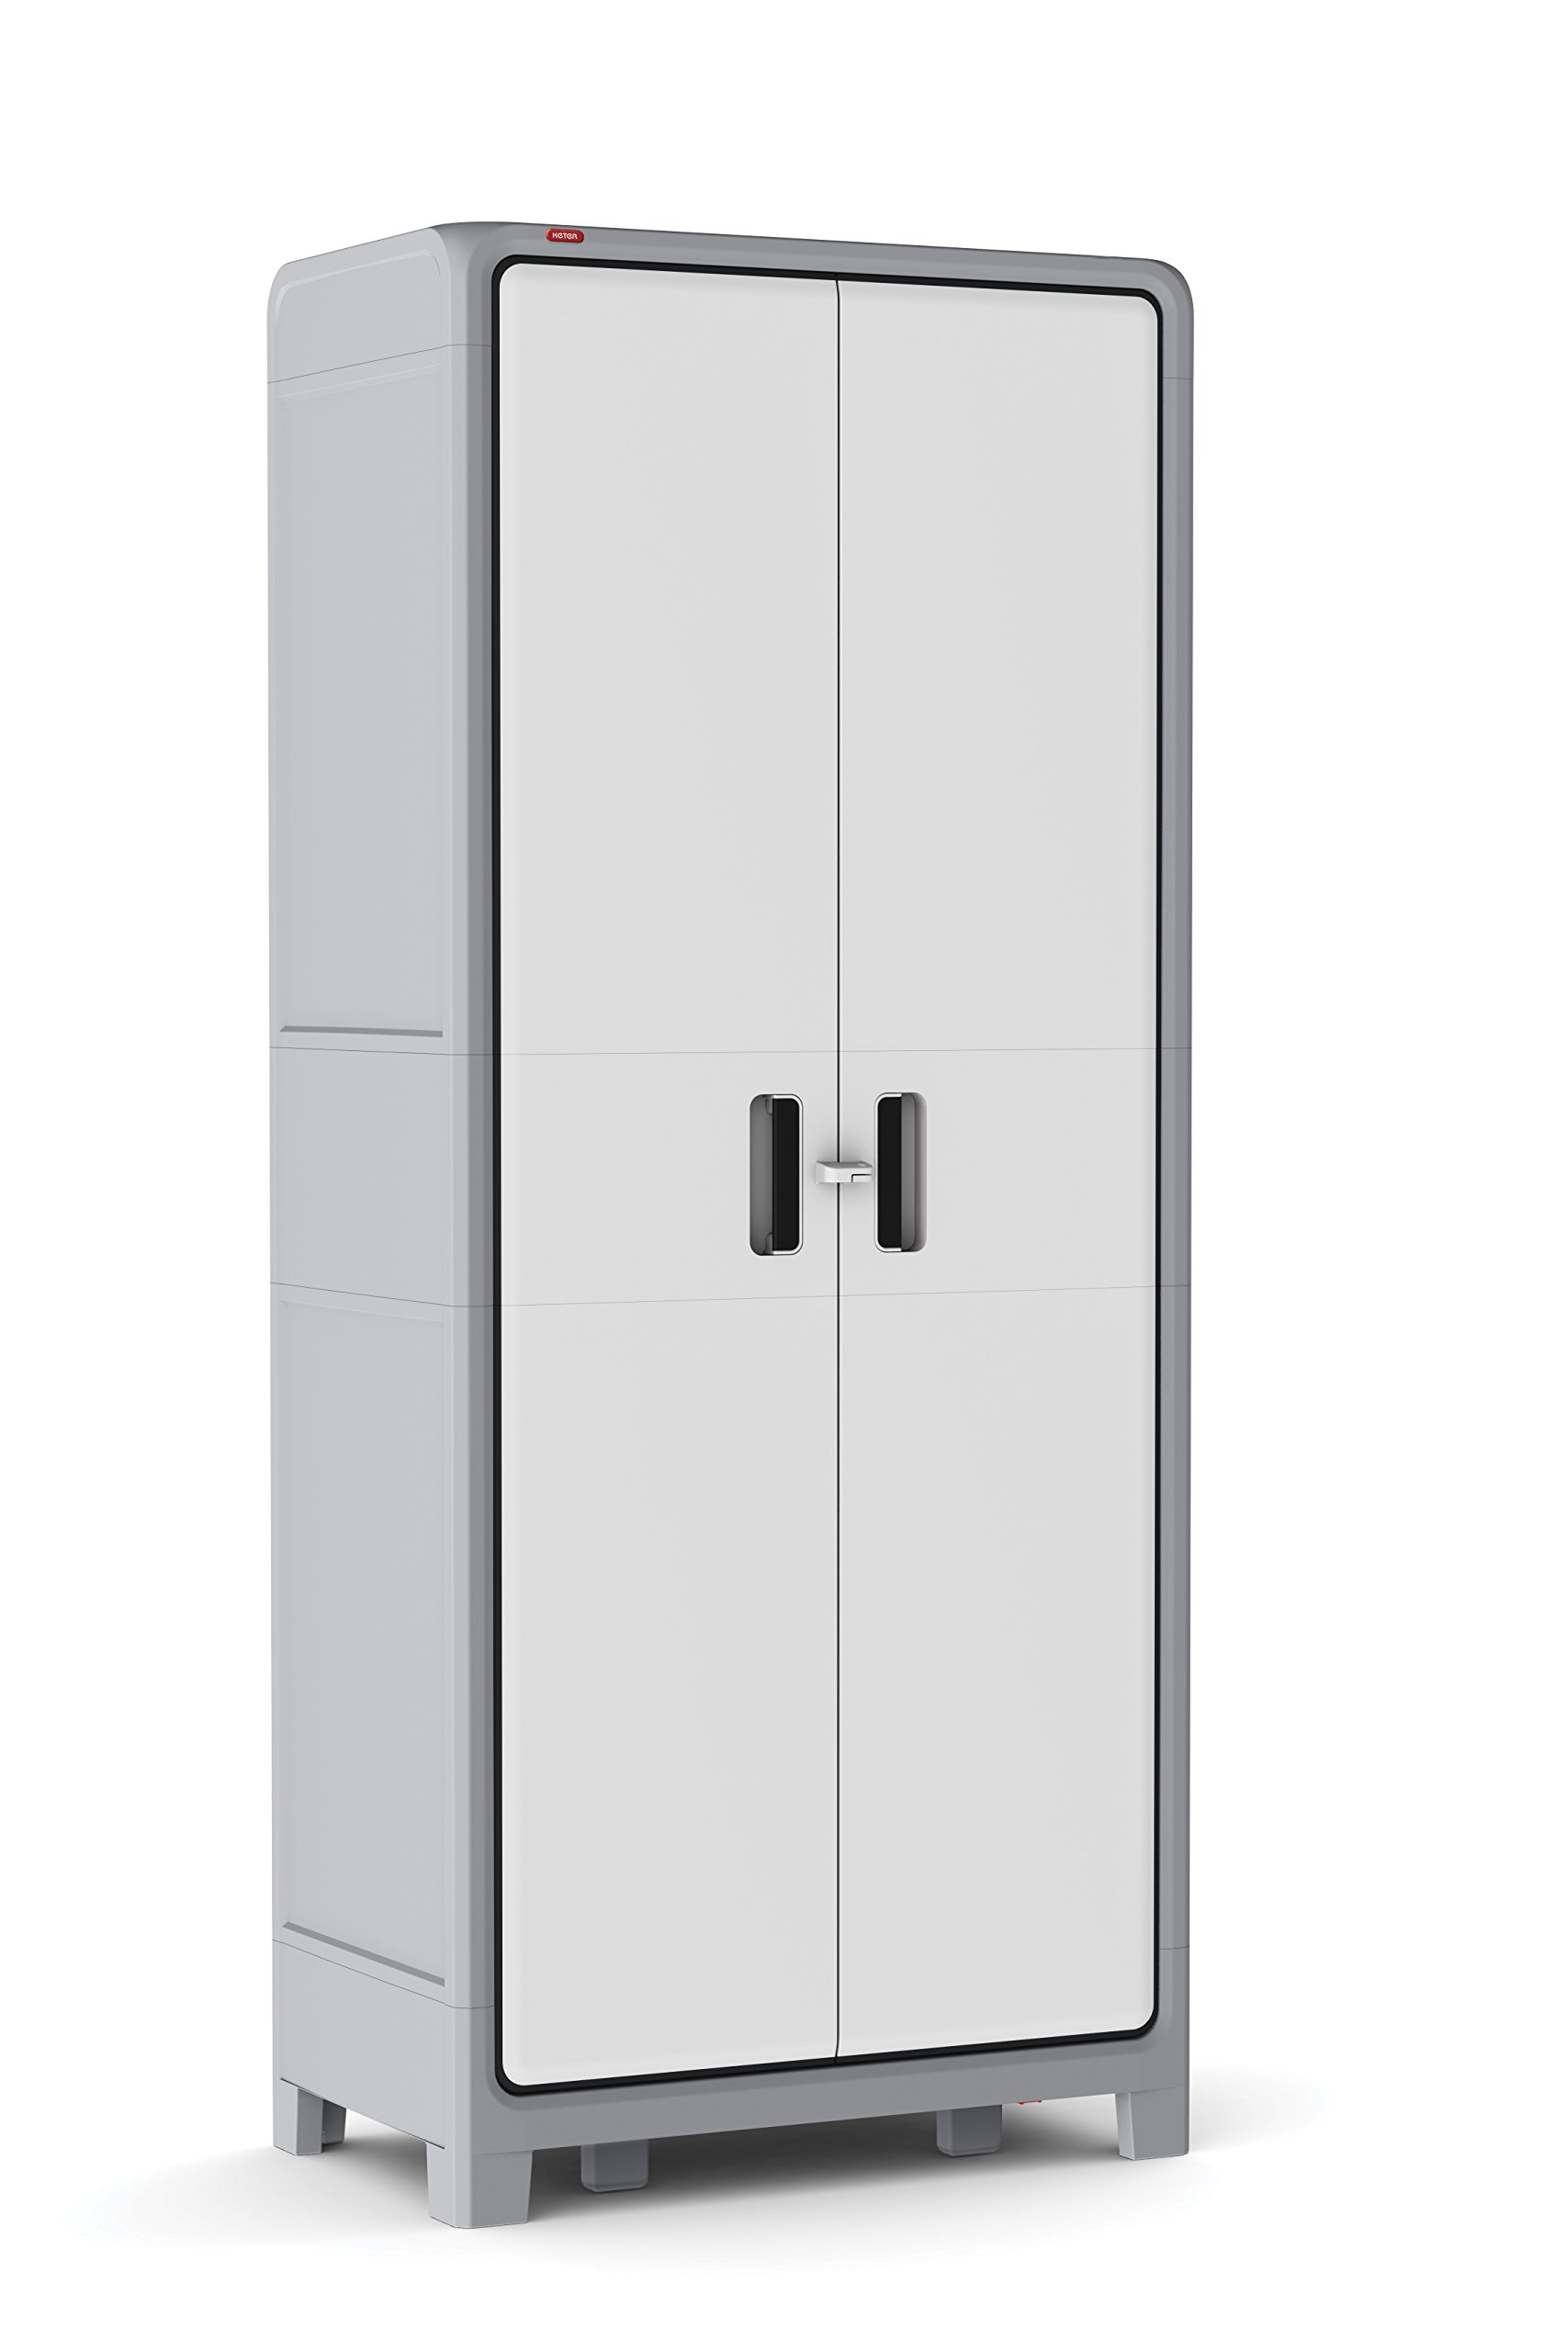 Keter Optima Wonder 72 x 31 x 18 in. Free Standing Plastic Tall Storage Cabinet with 4 Adjustable Shelves, White & Grey